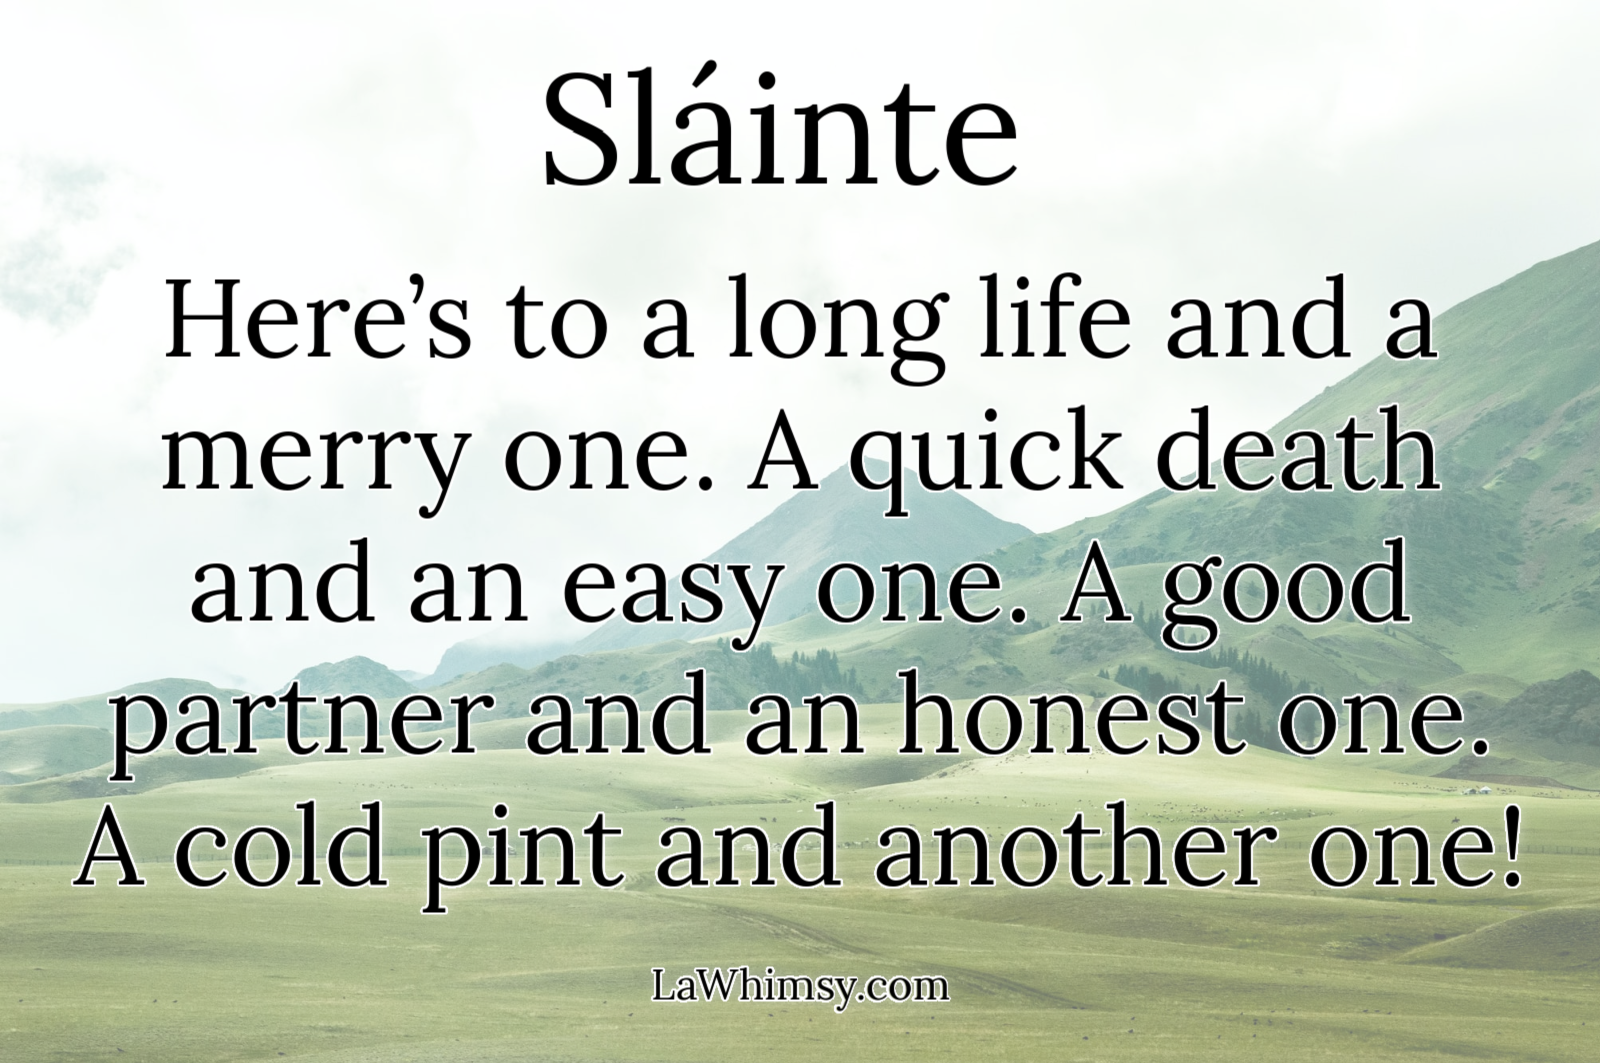 slainte here's to a long life and a merry one via LaWhimsy